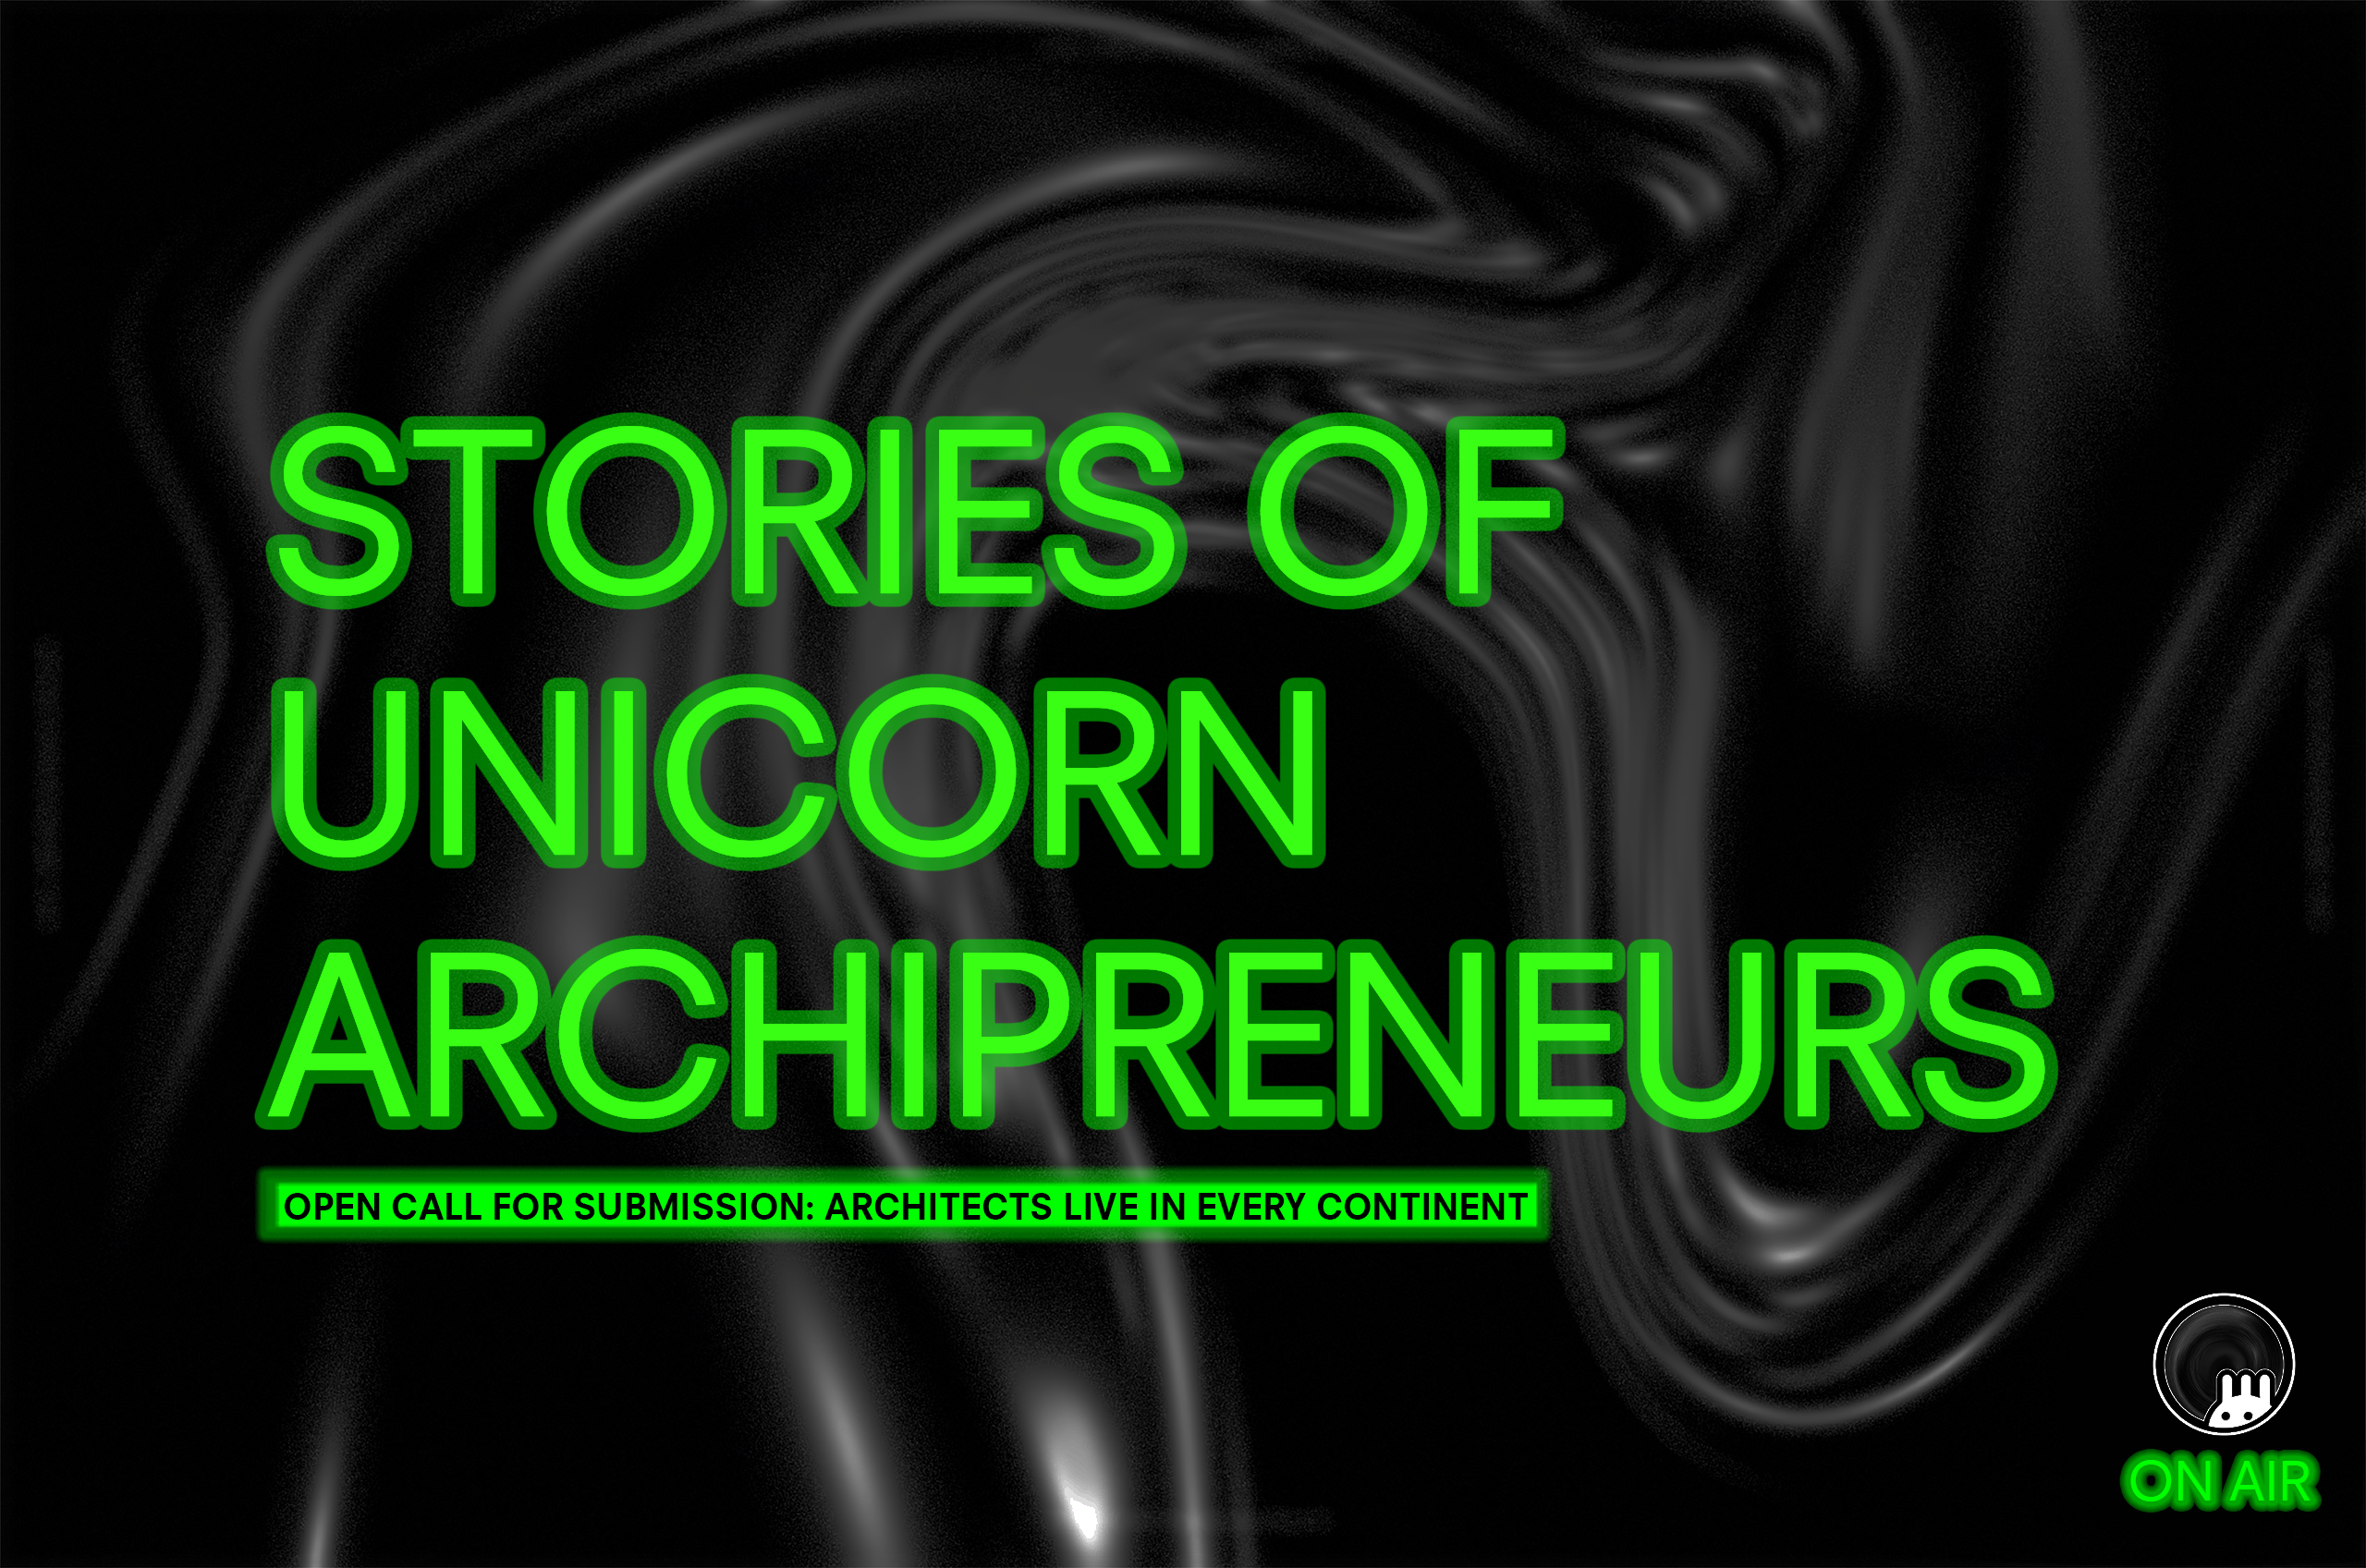 Stories of Unicron Archipreneurs-blurry background 03-2 copy